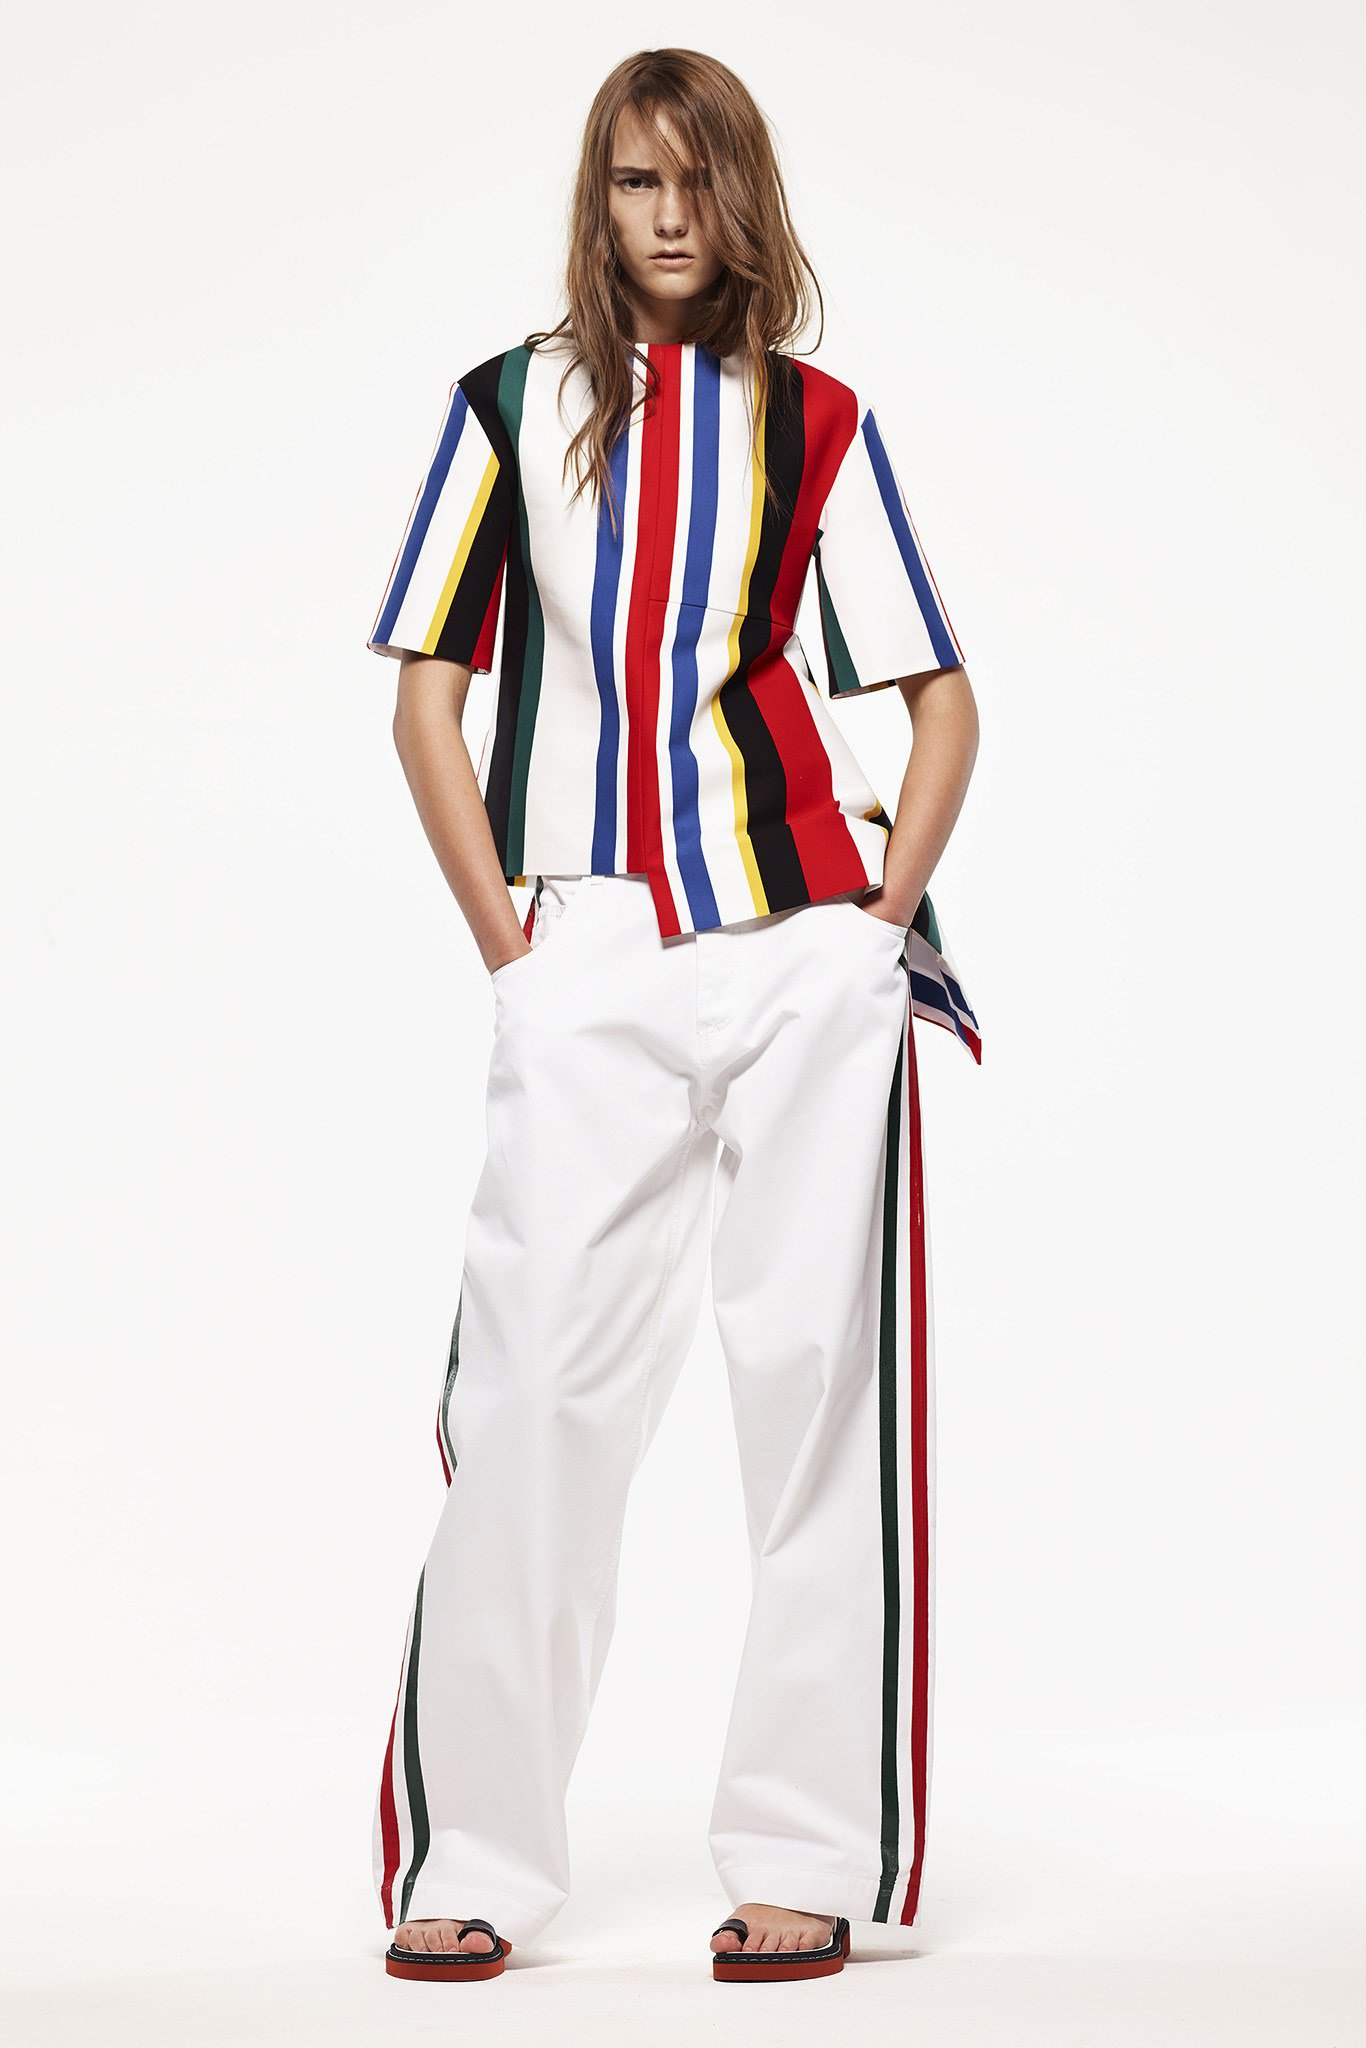 Marni junior spring summer 2016 stripes